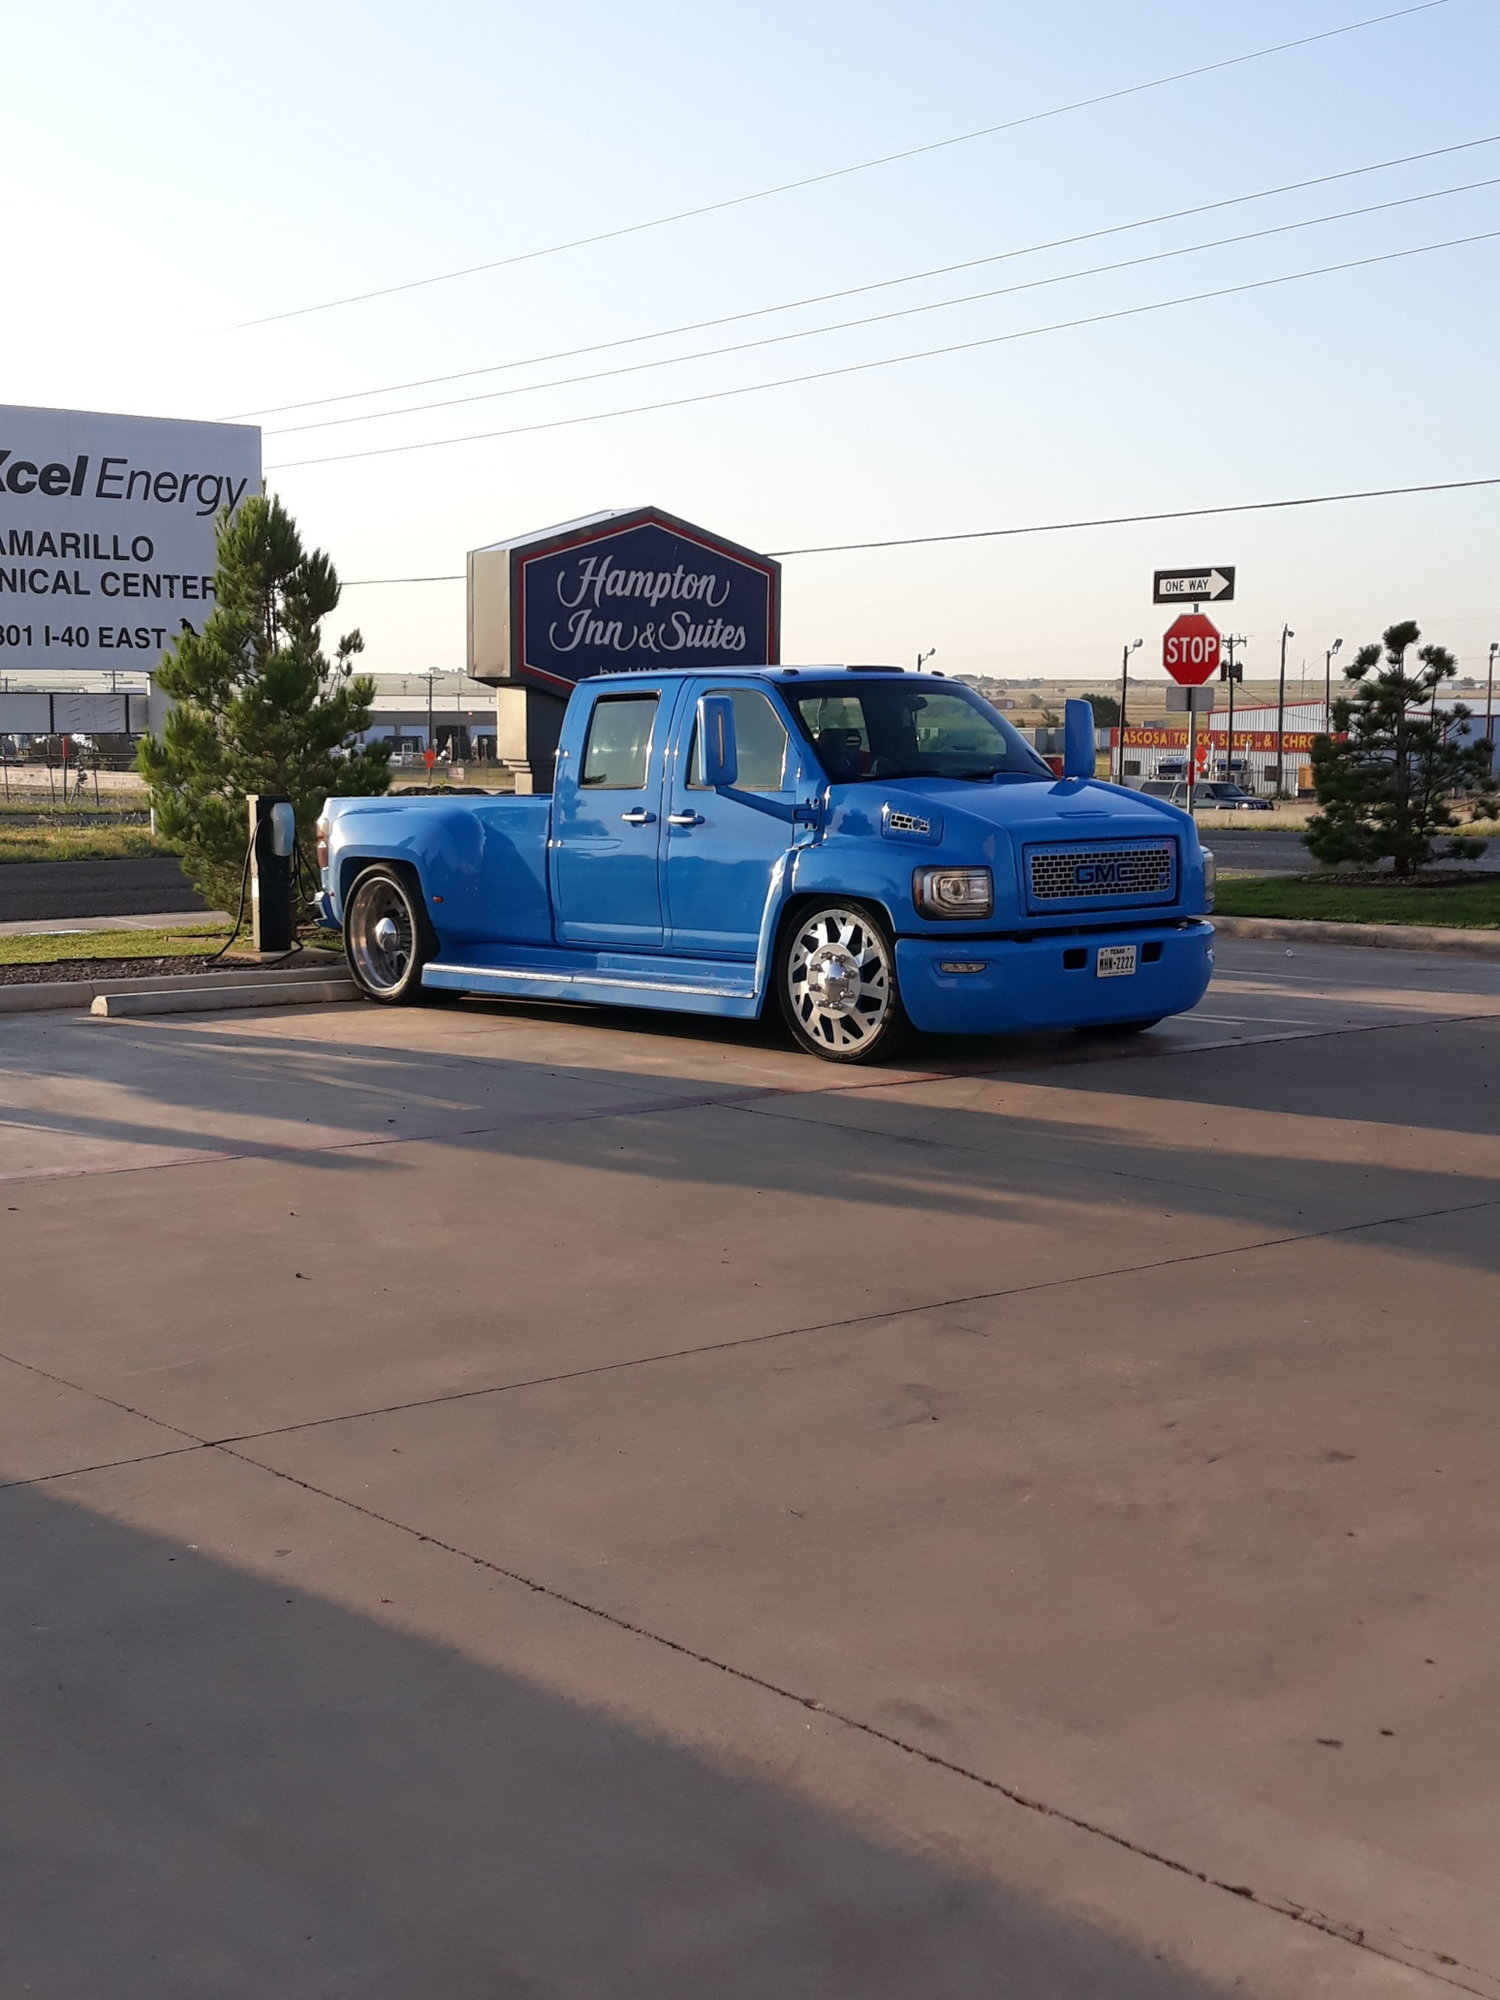 Parking in a tesla spot - Ford F150 Forum - Community of Ford Truck Fans